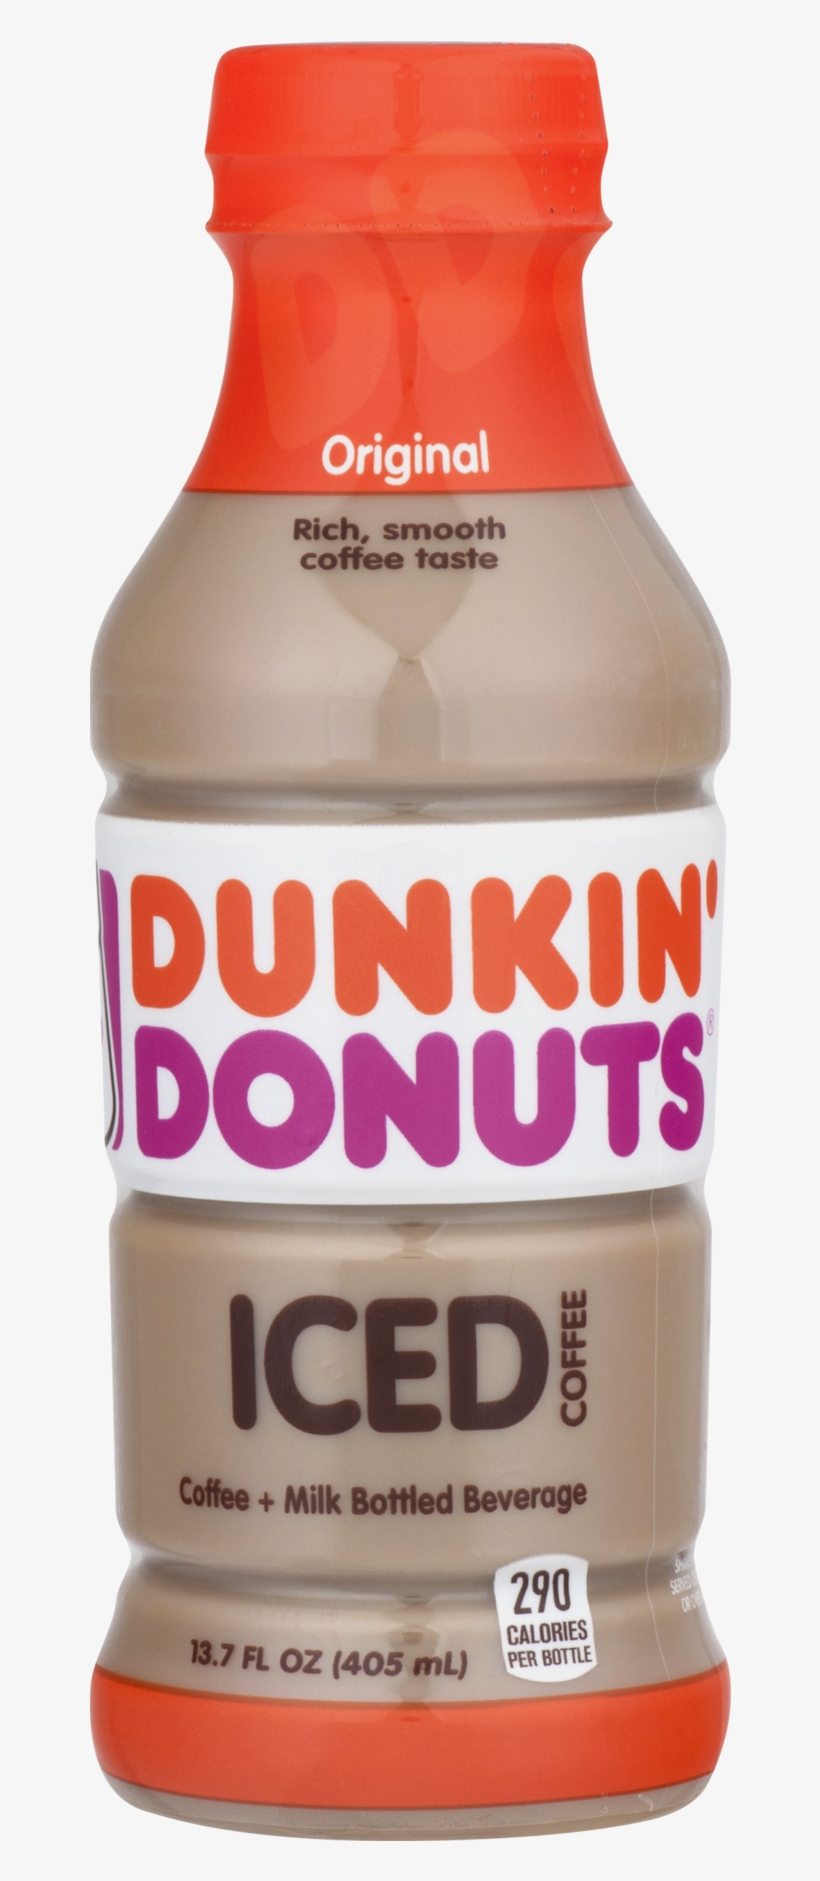 Dunkin Donuts Coffee Png - Dunkin Donuts Bottled Iced Coffee, transparent png #2323129